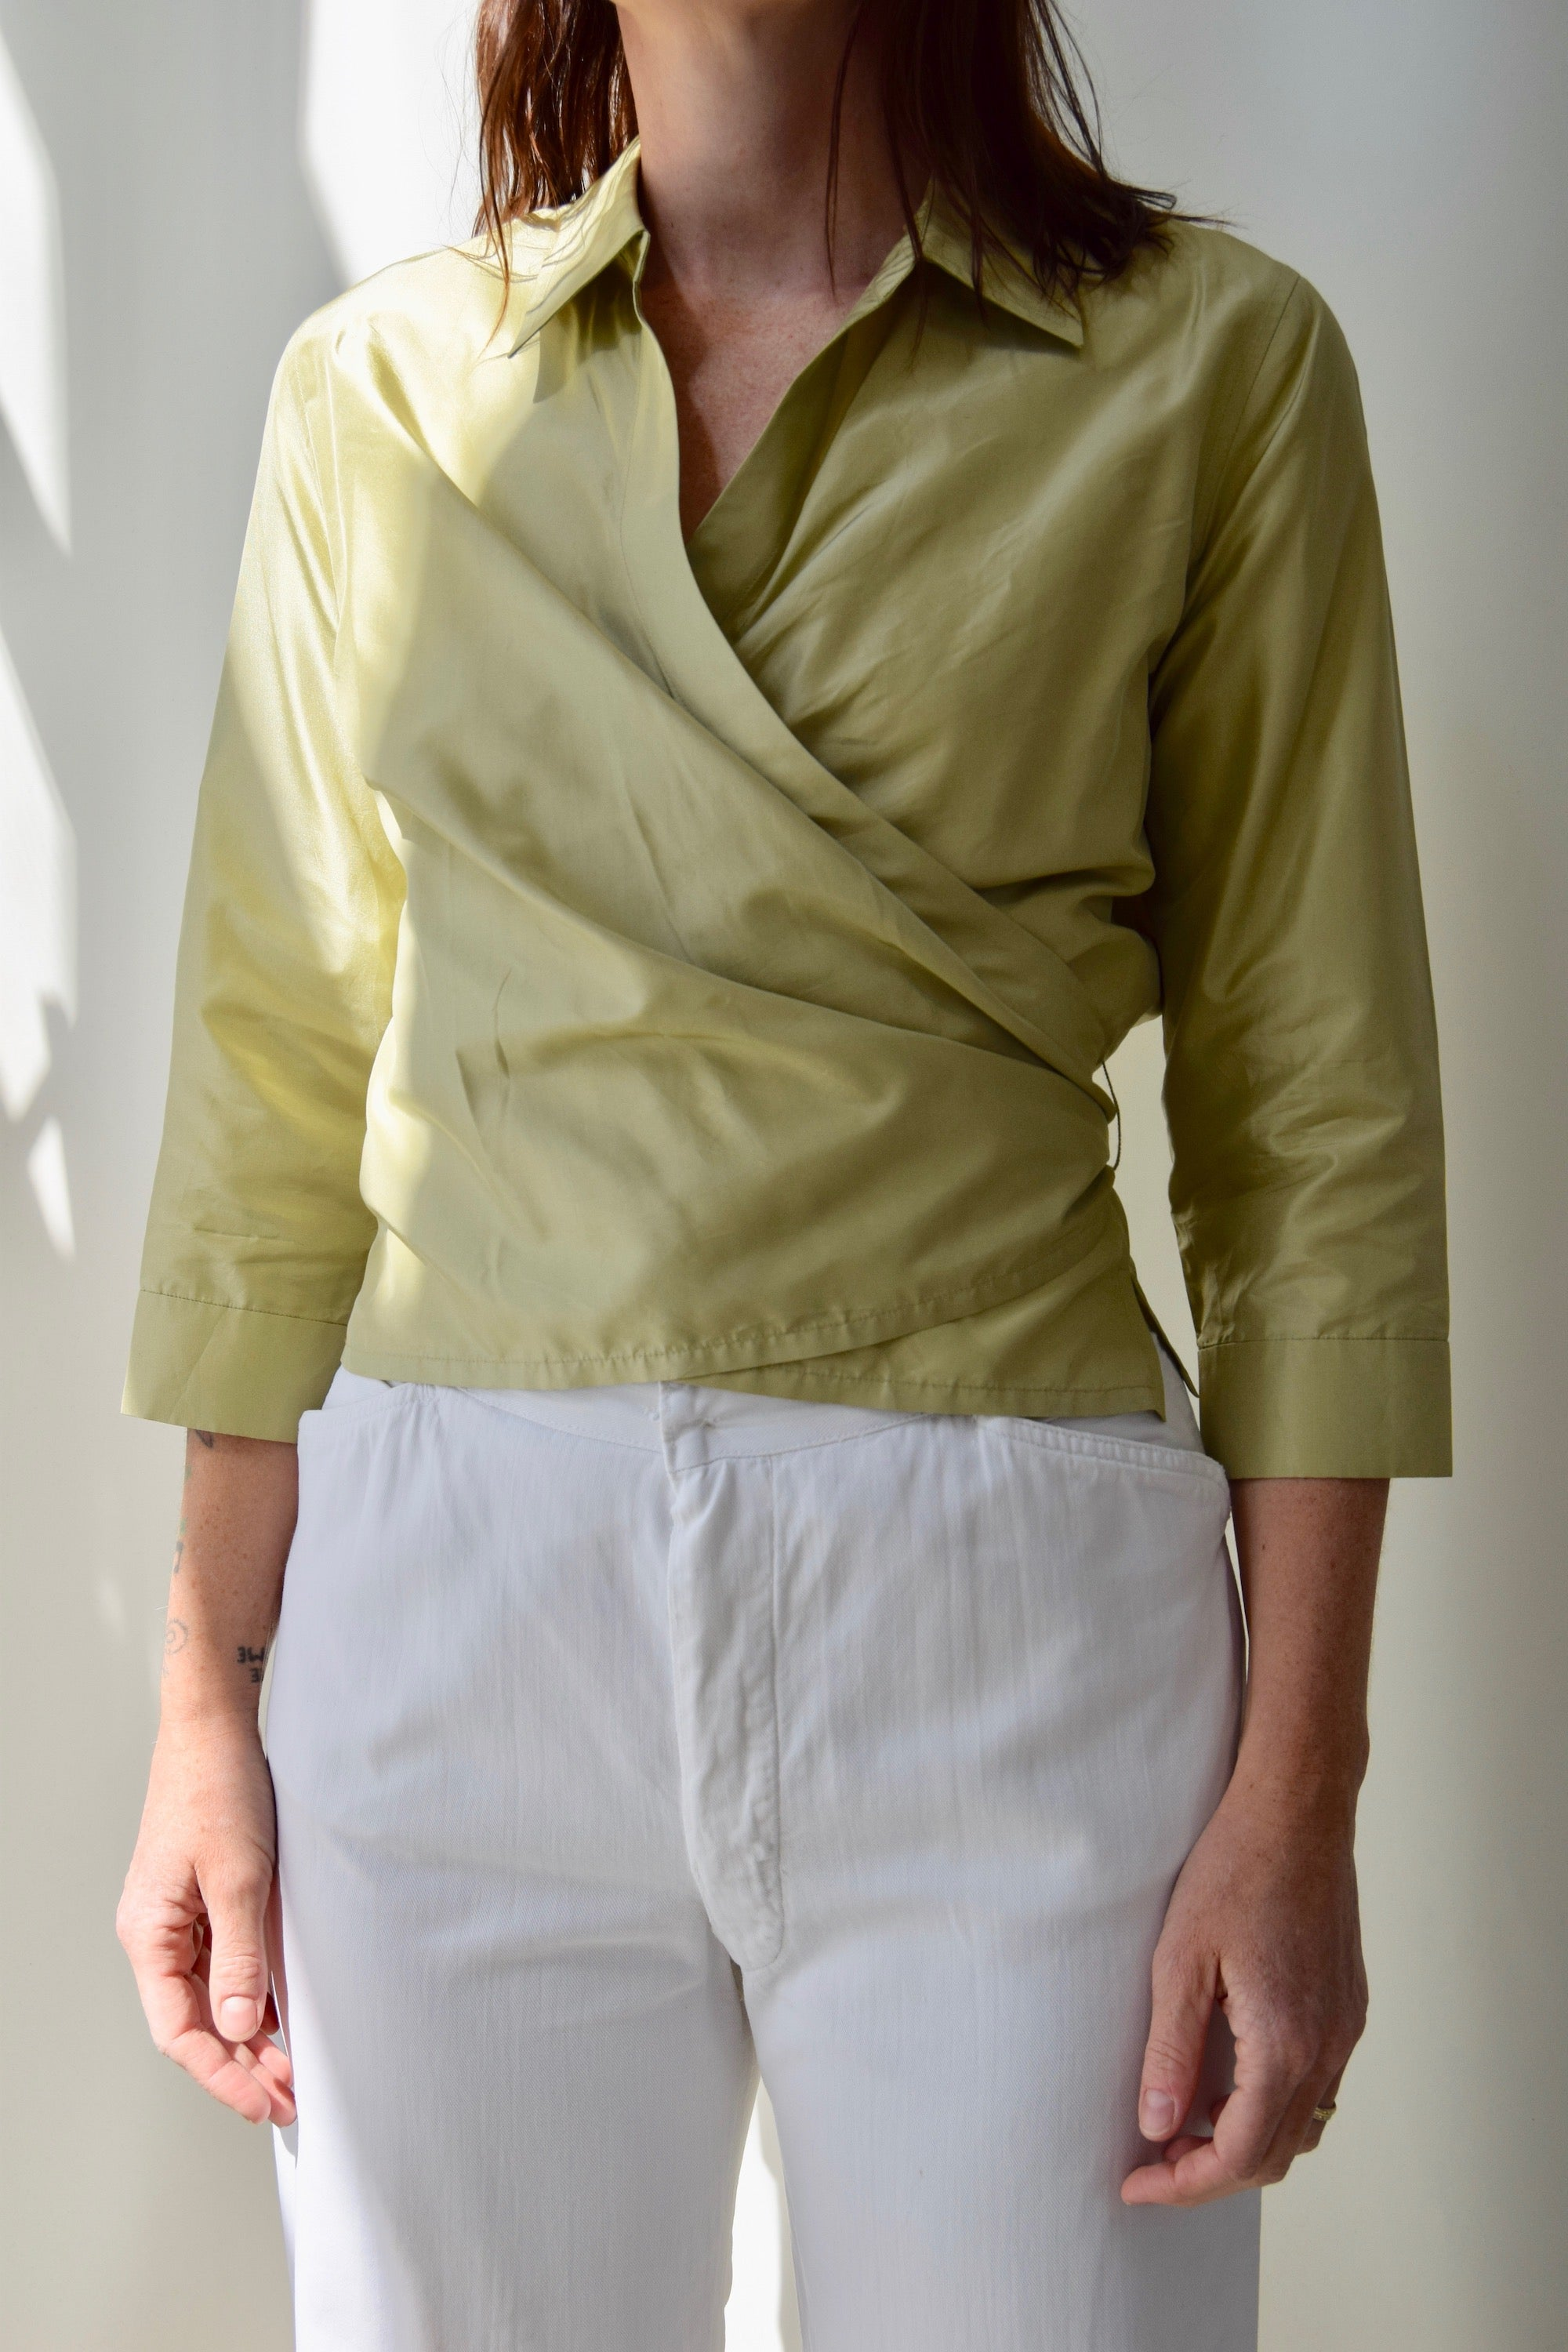 Metallic Chartreuse Wrap Top